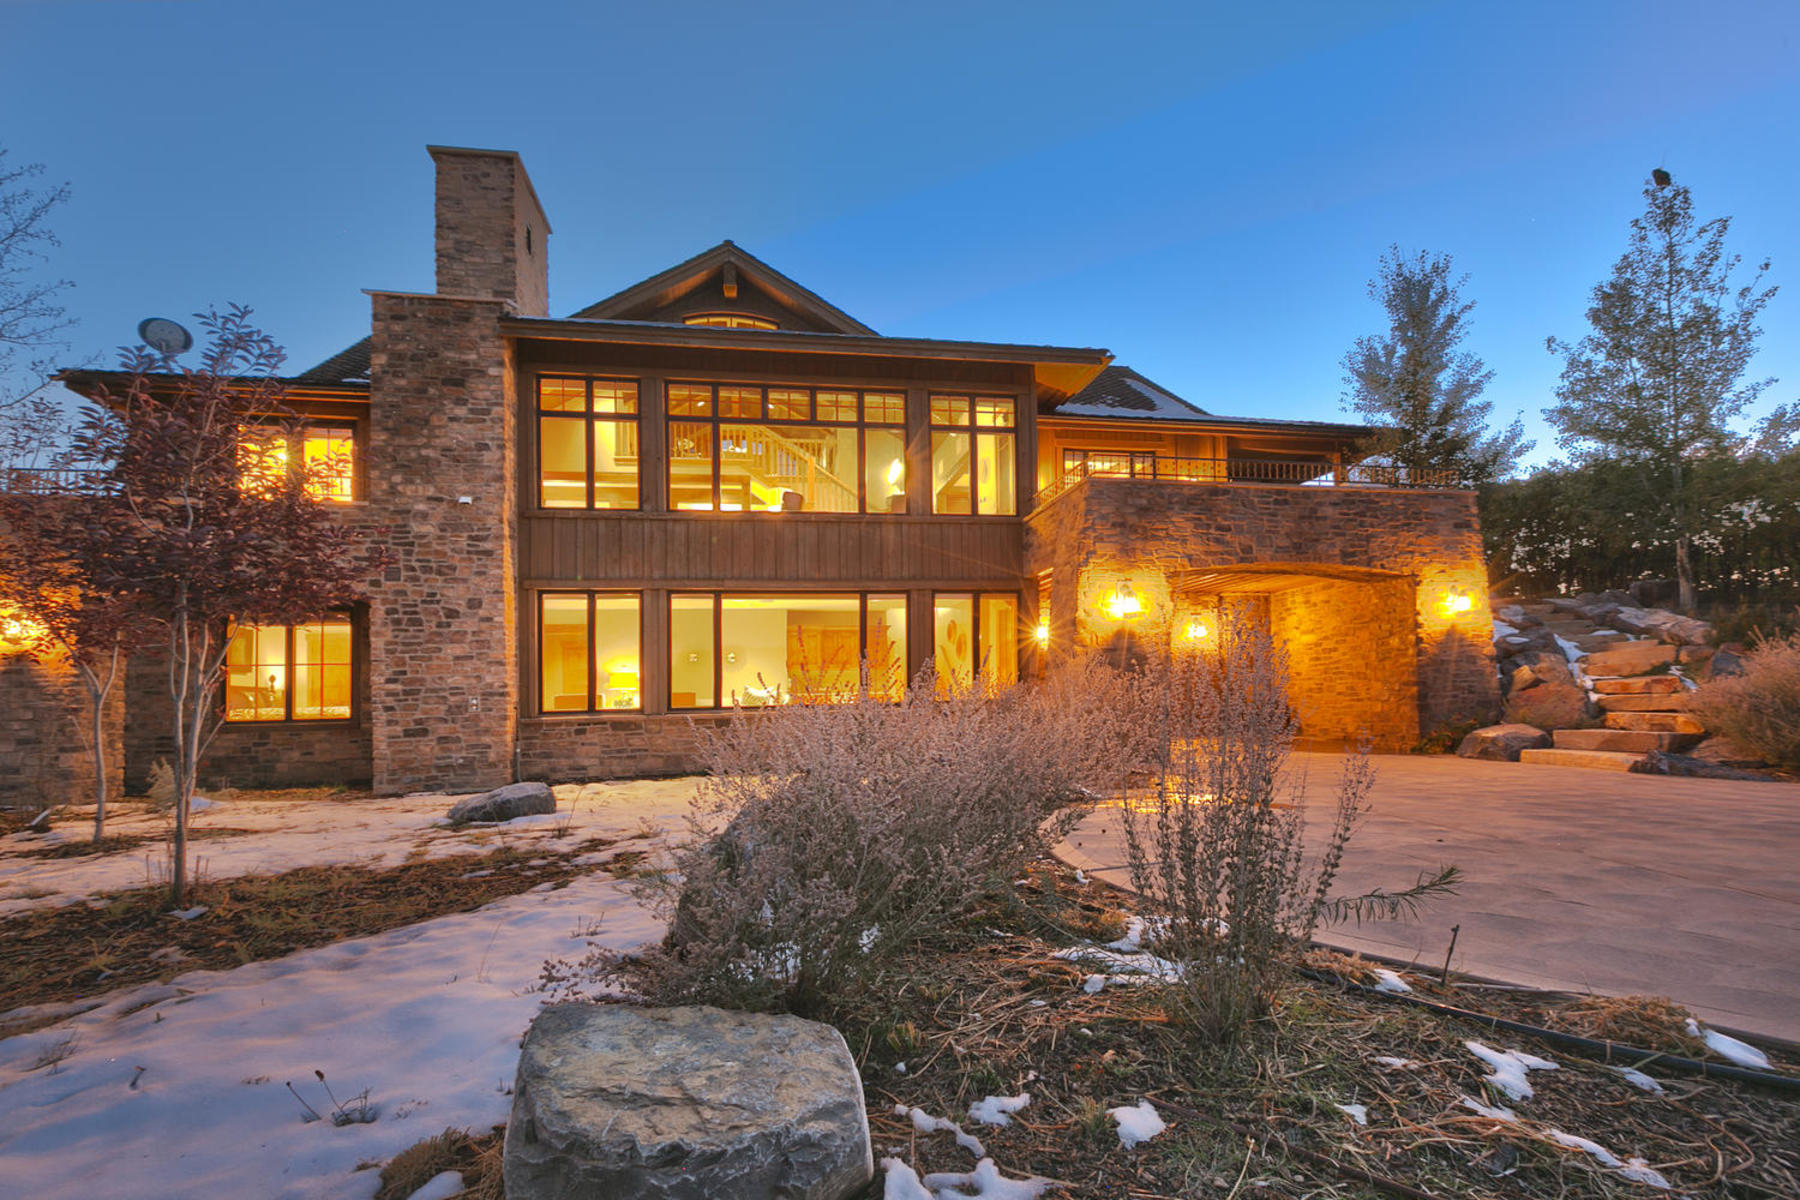 Single Family Home for Sale at Fabulous Golf Club Cabin in Promontory 8584 Ranch Club Ct, Park City, Utah, 84098 United States